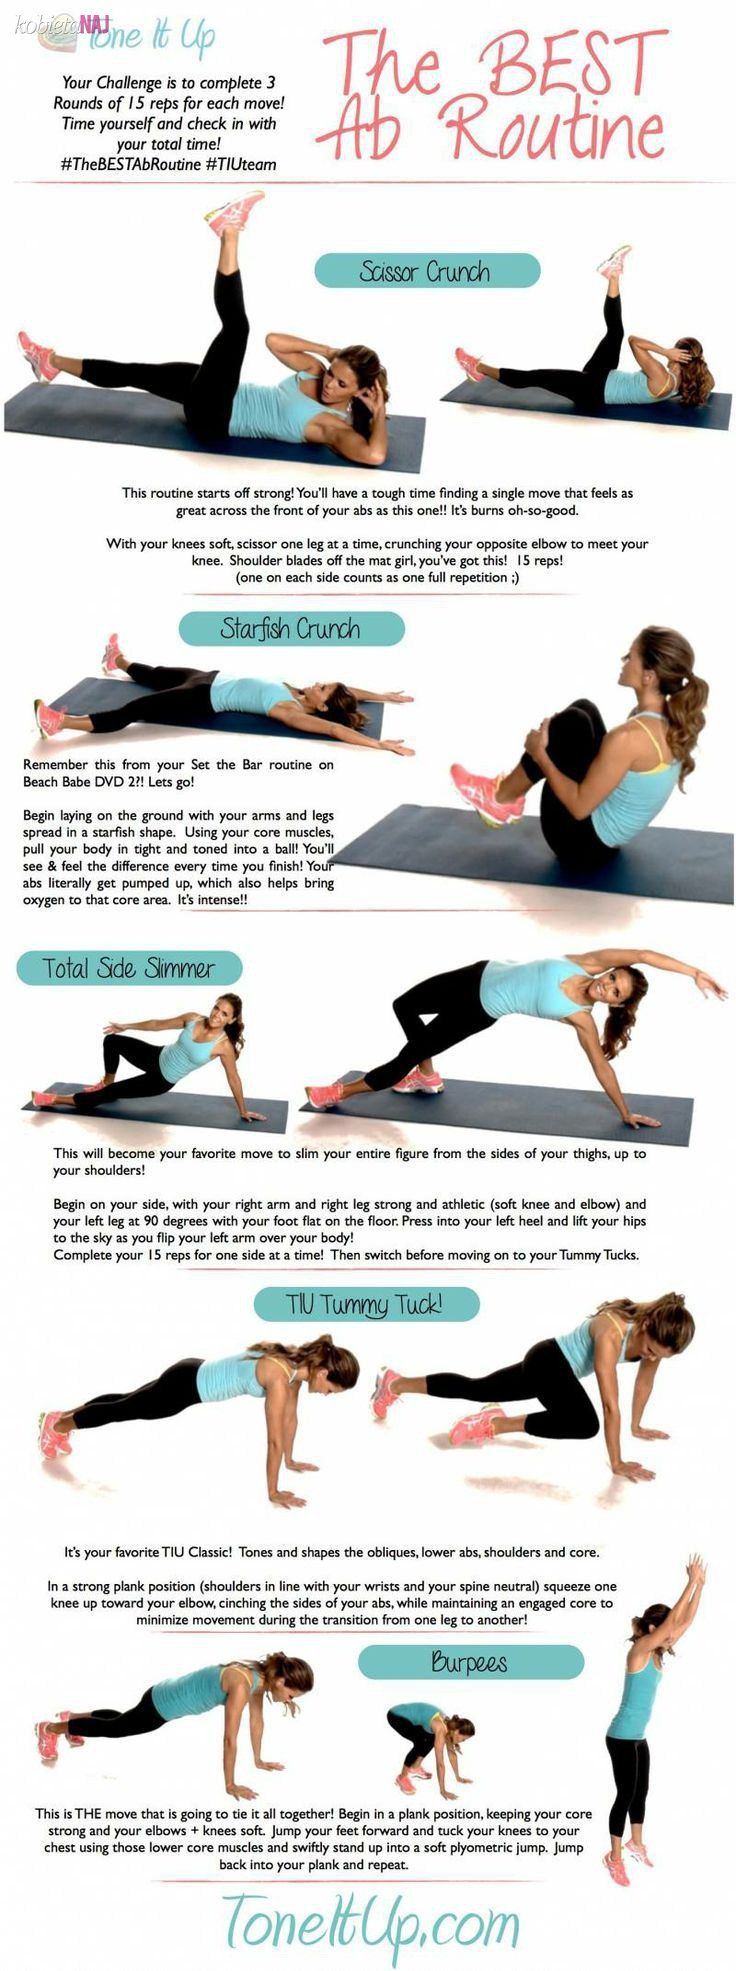 795 best fitness :) images on Pinterest | Exercise workouts, Healthy ...